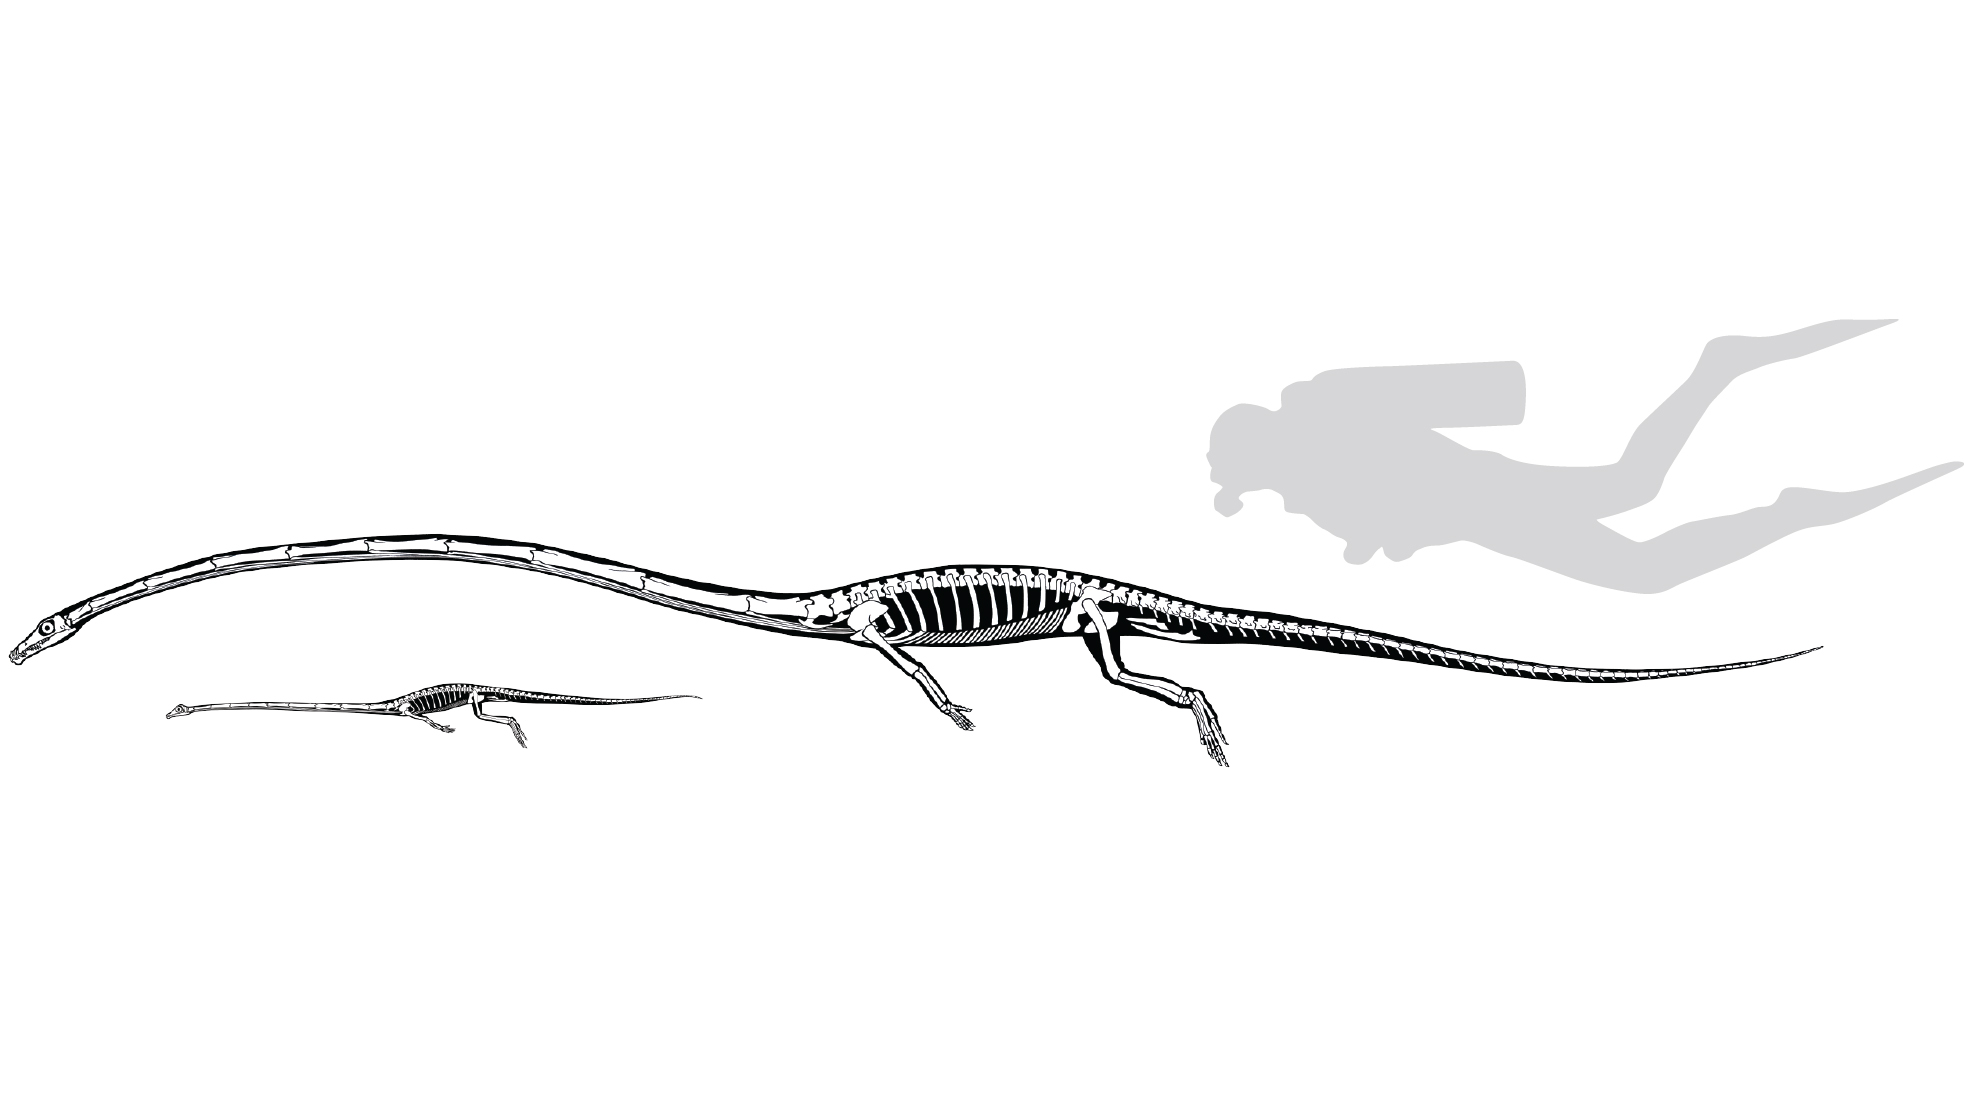 Reconstruction of Skeletons